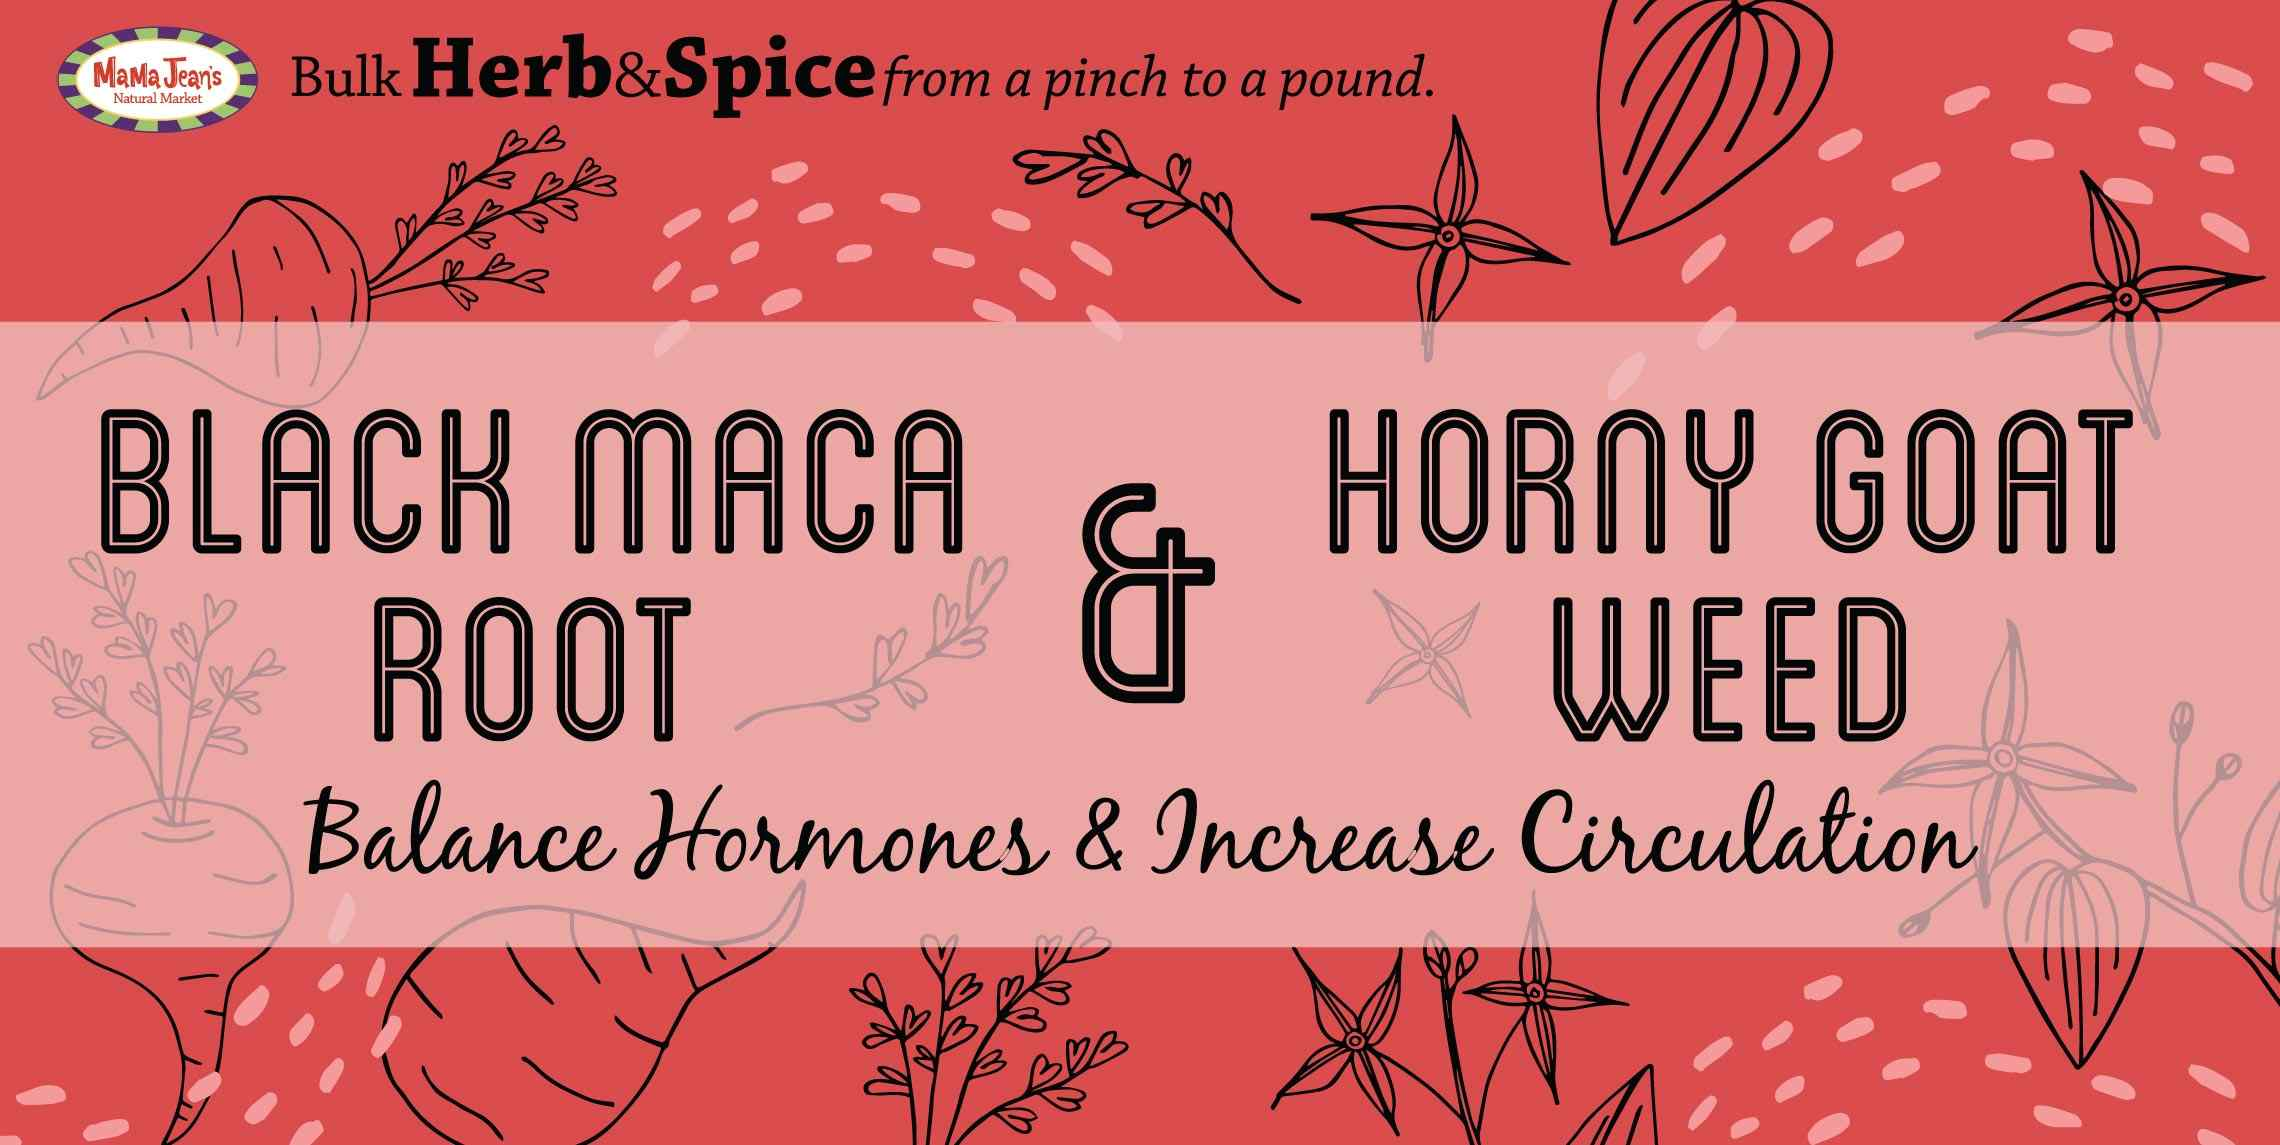 How long does horny goat weed last